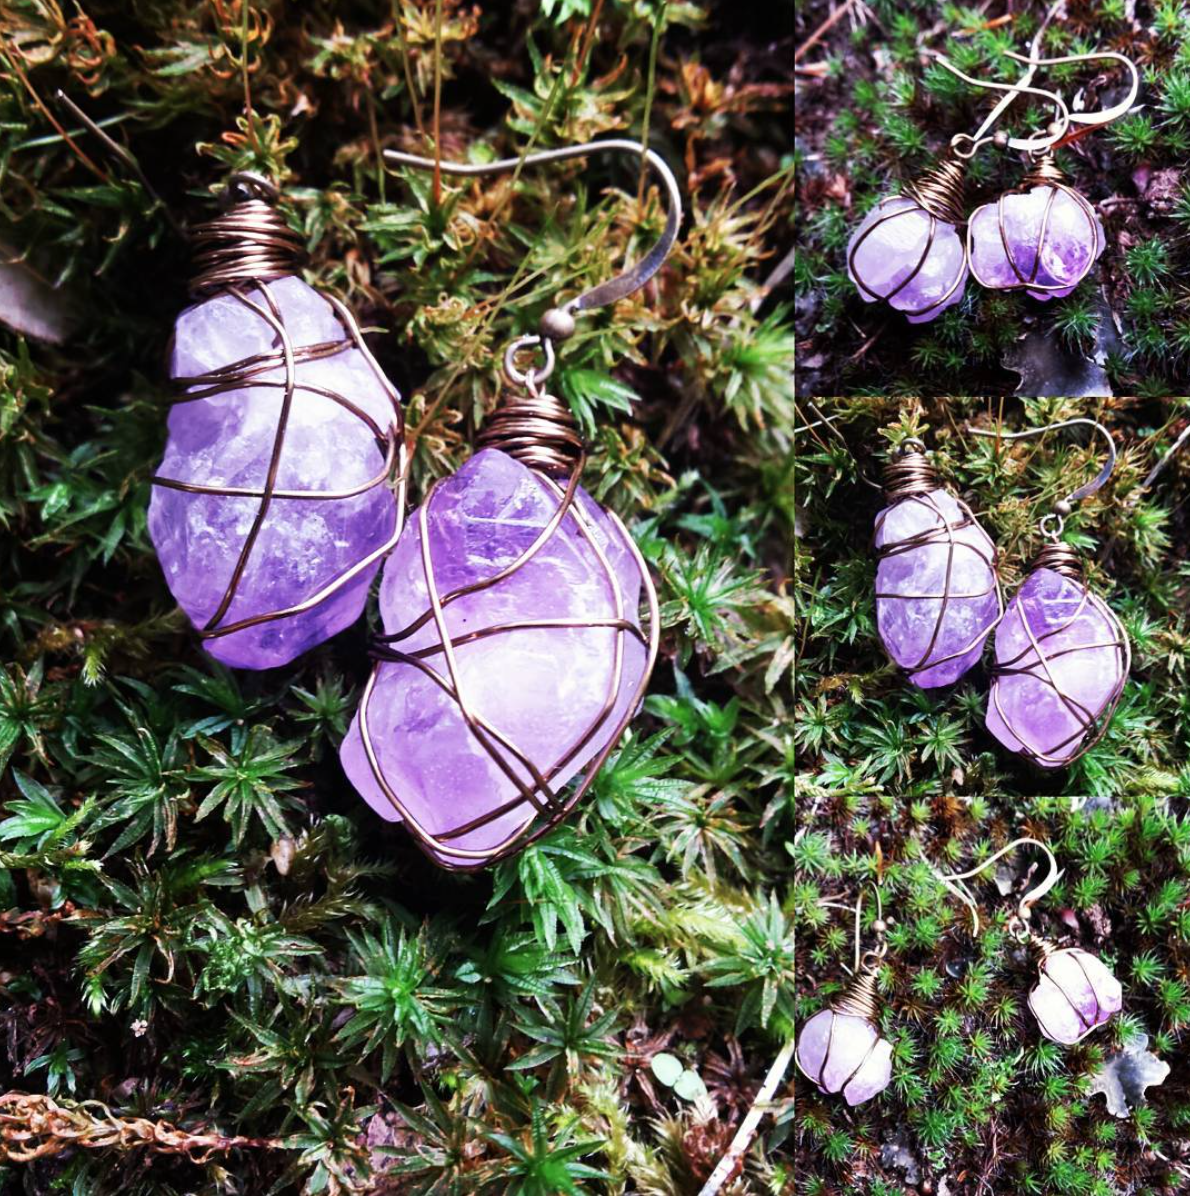 Mama amethyst and baby amethyst earrings by Laura Louise.